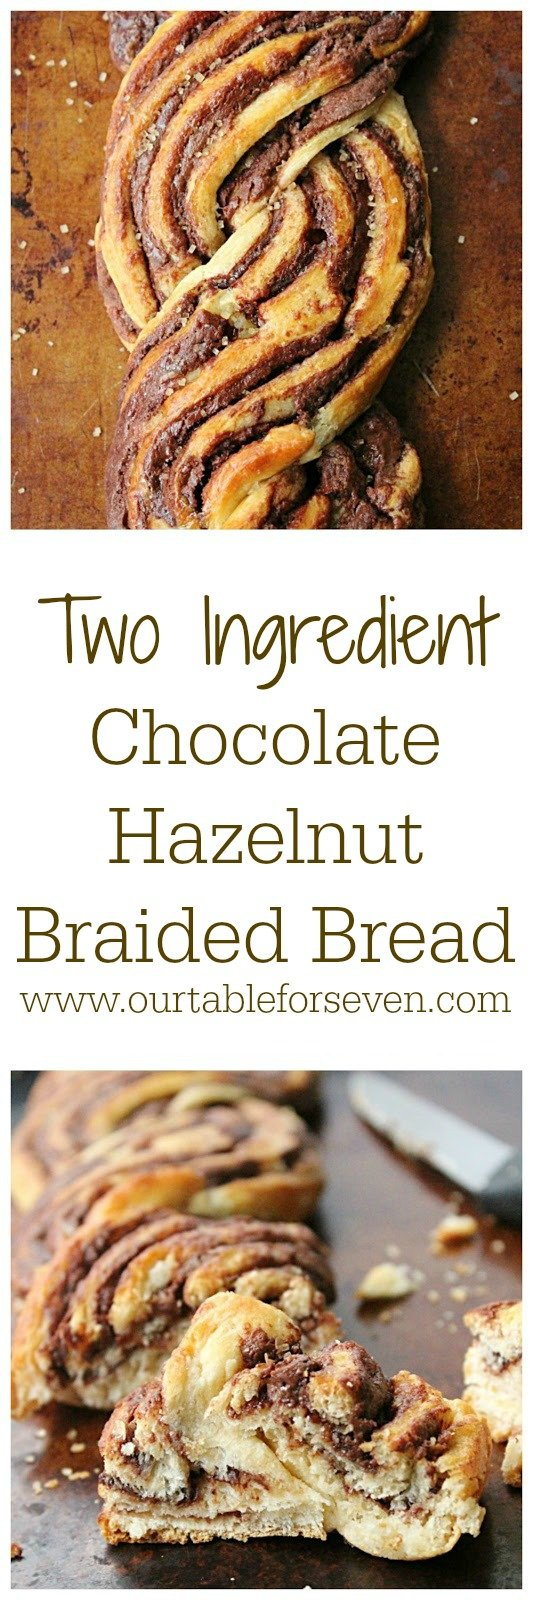 Two Ingredient Chocolate Hazelnut Braided Bread from Table for Seven